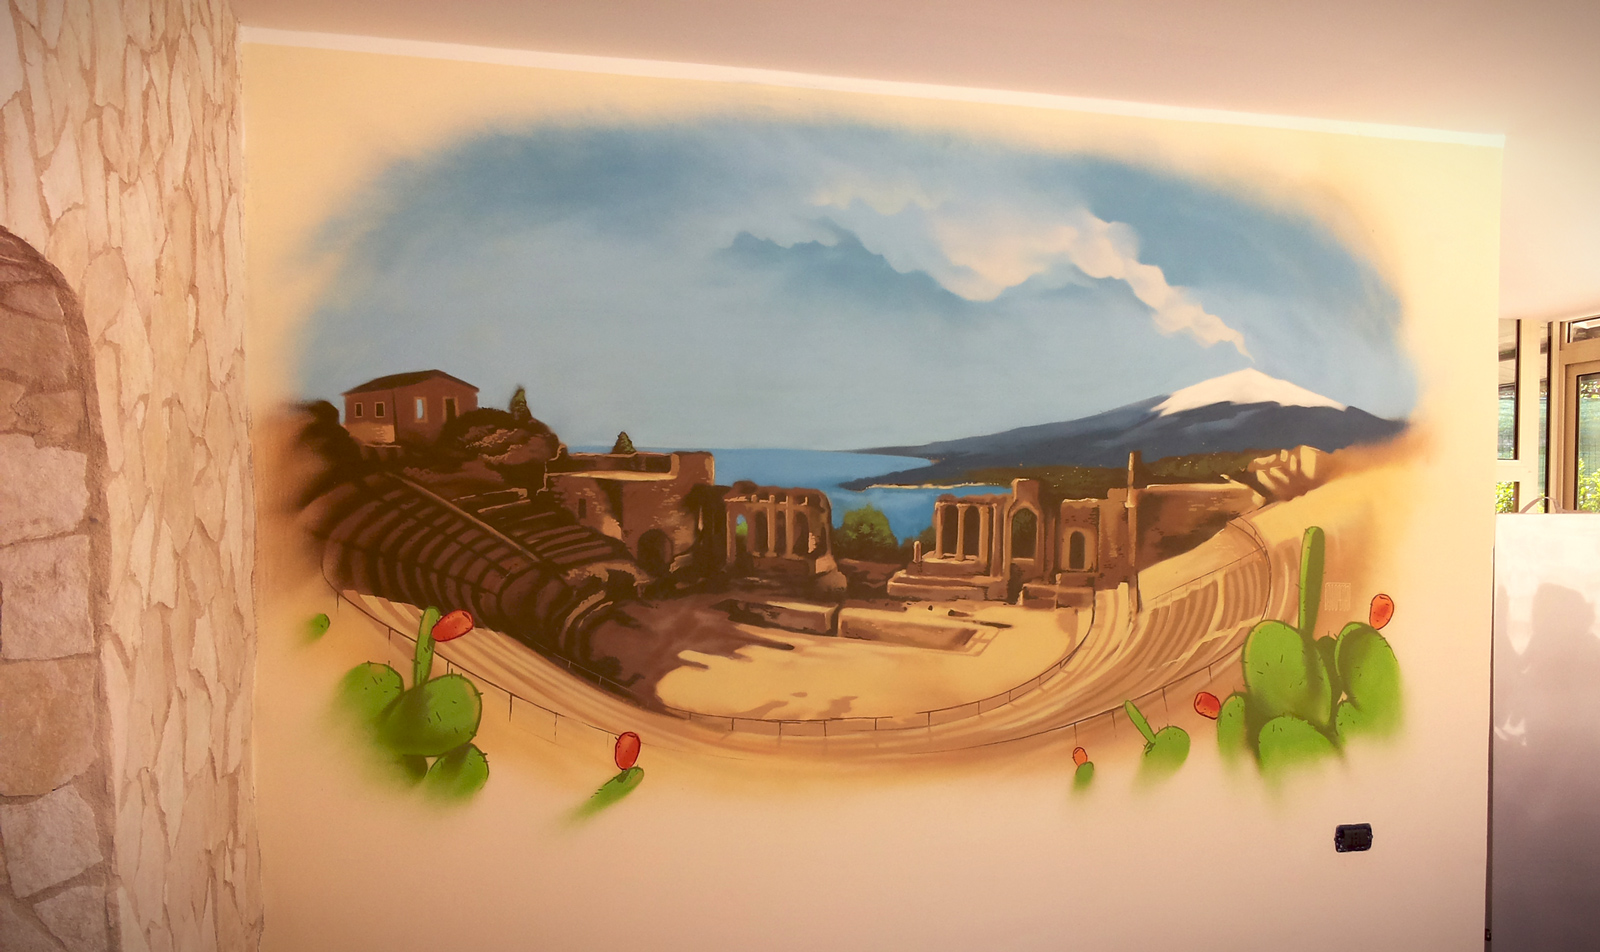 Decor design misterpera - Decoration mural design ...